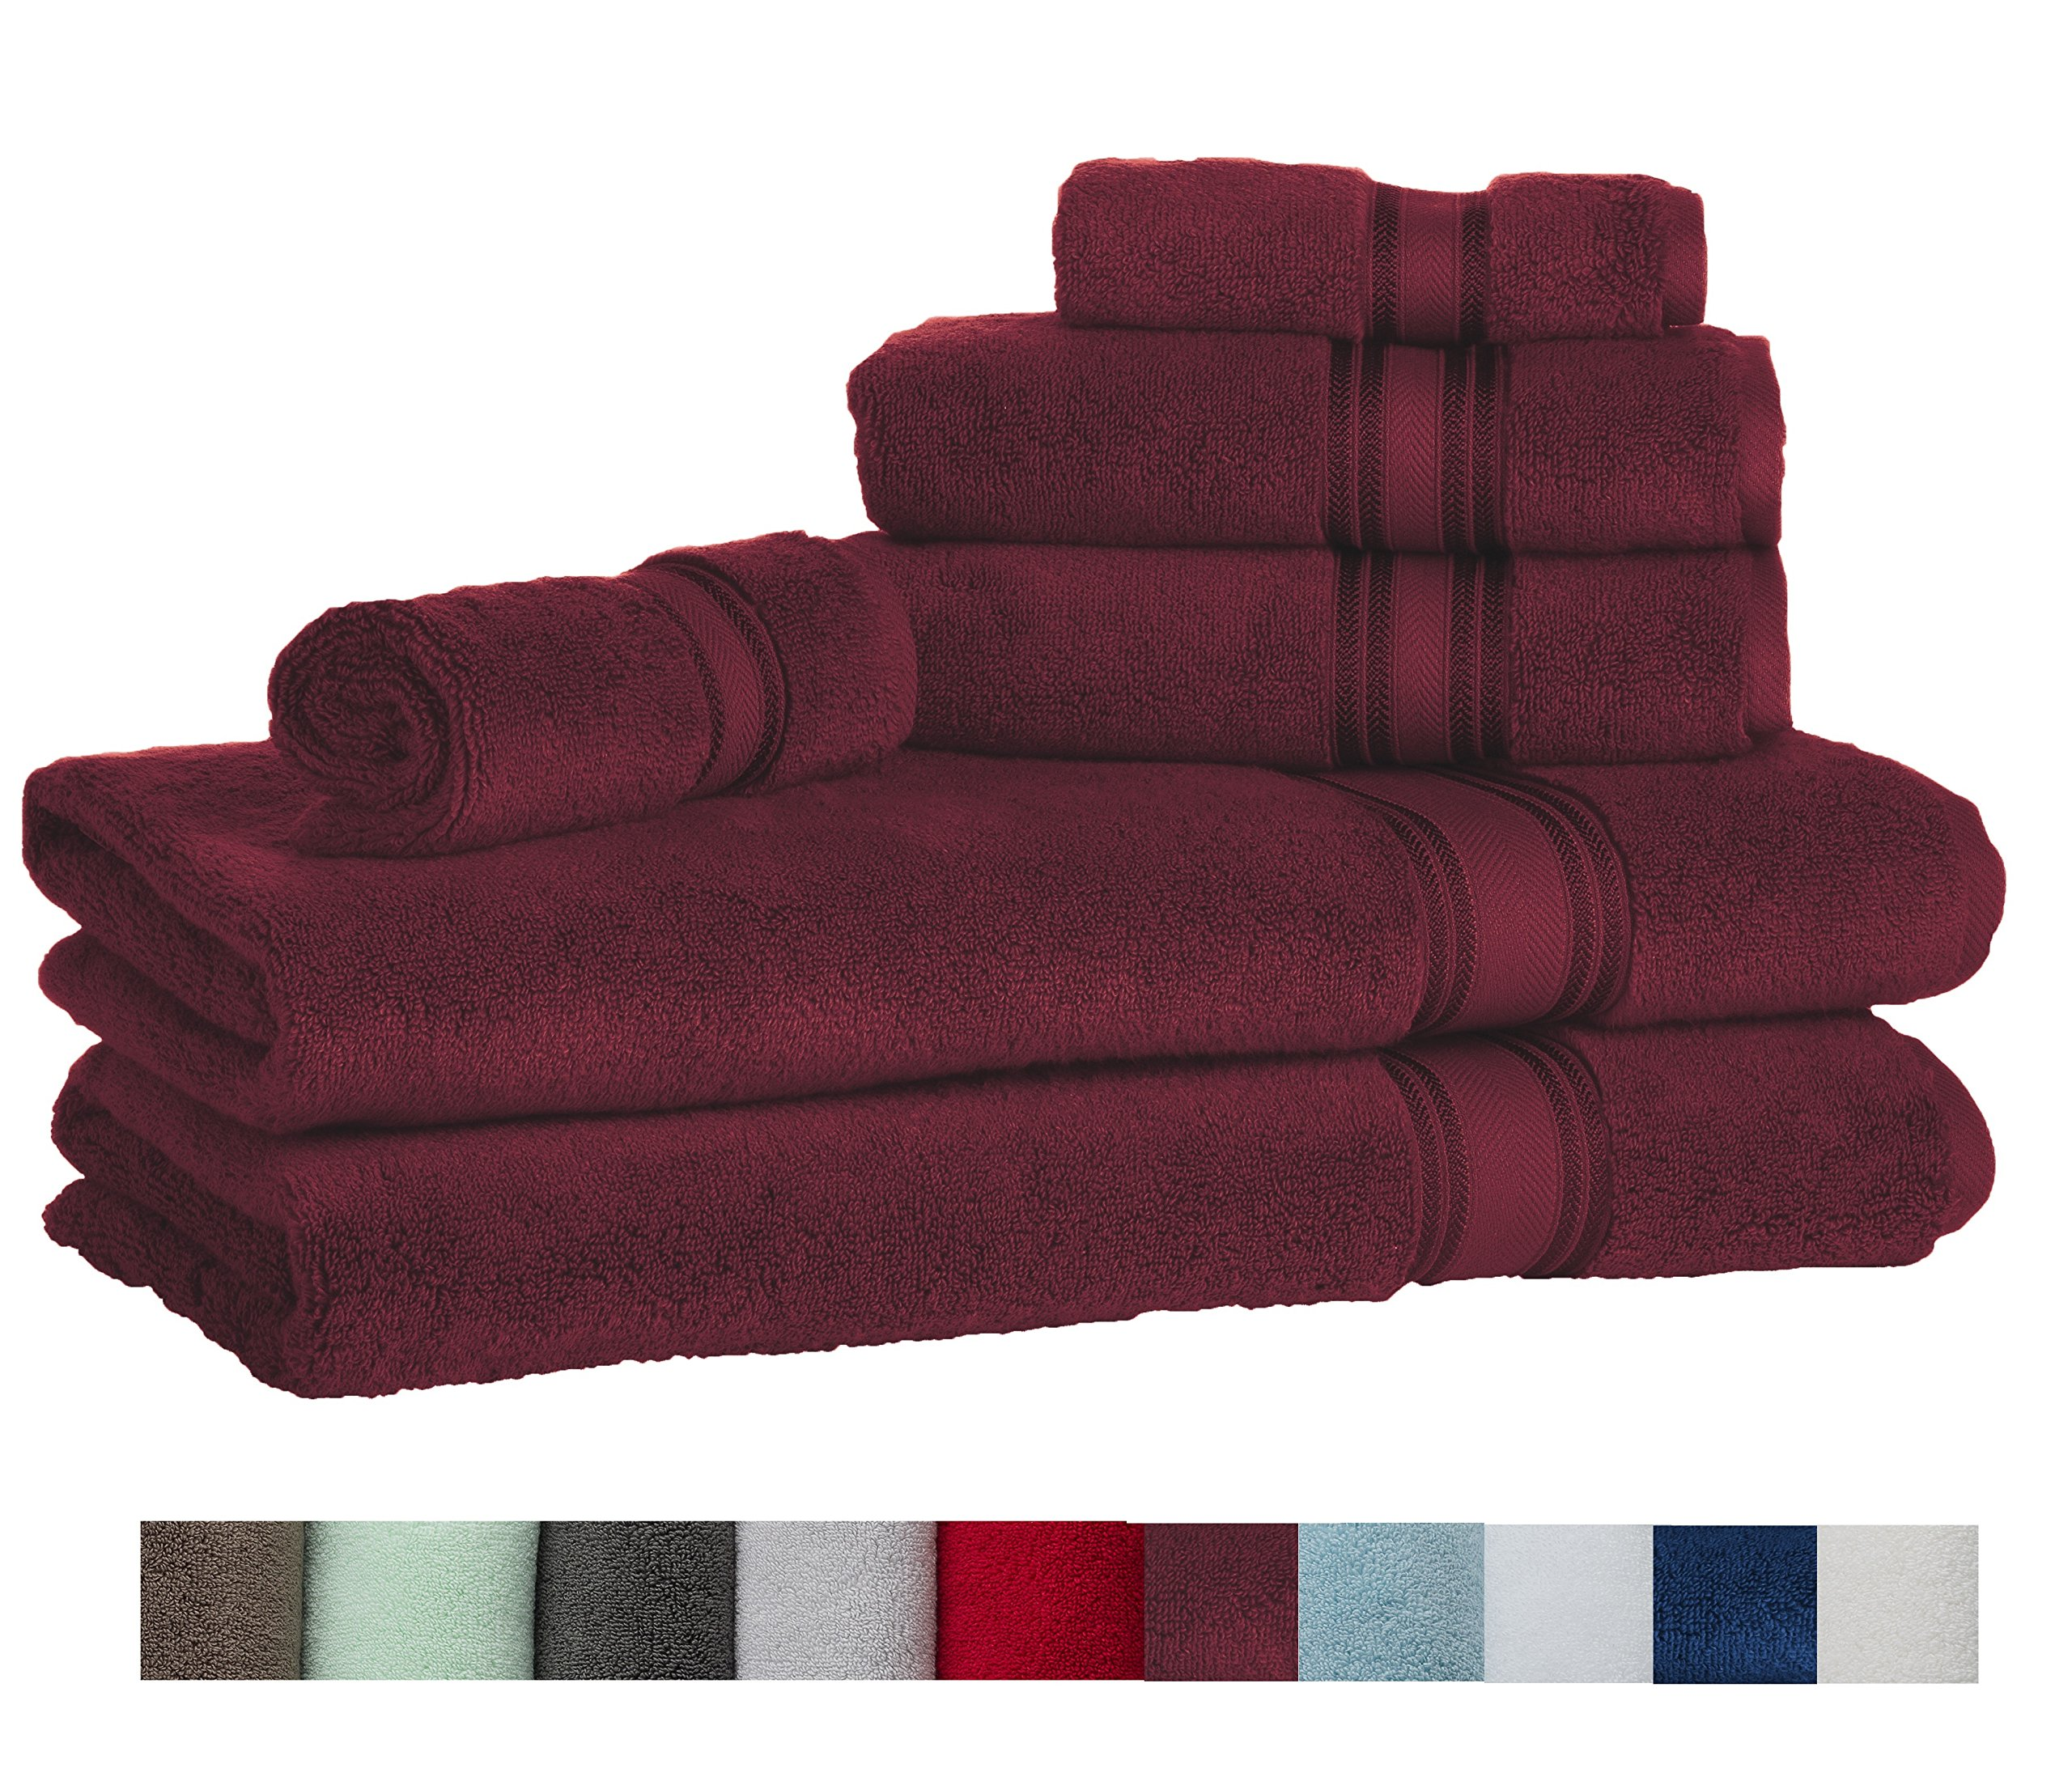 Casa Lino Quick Dry Super Zero Twist 6 Piece Bath Towel Set 7 Star Hotel Luxury Collection, 2 Bath Towel 28x54'', 2 Hand Towel- 16x28'', Face Towel- 13x13'' (burgundy) by Lezeth Collection